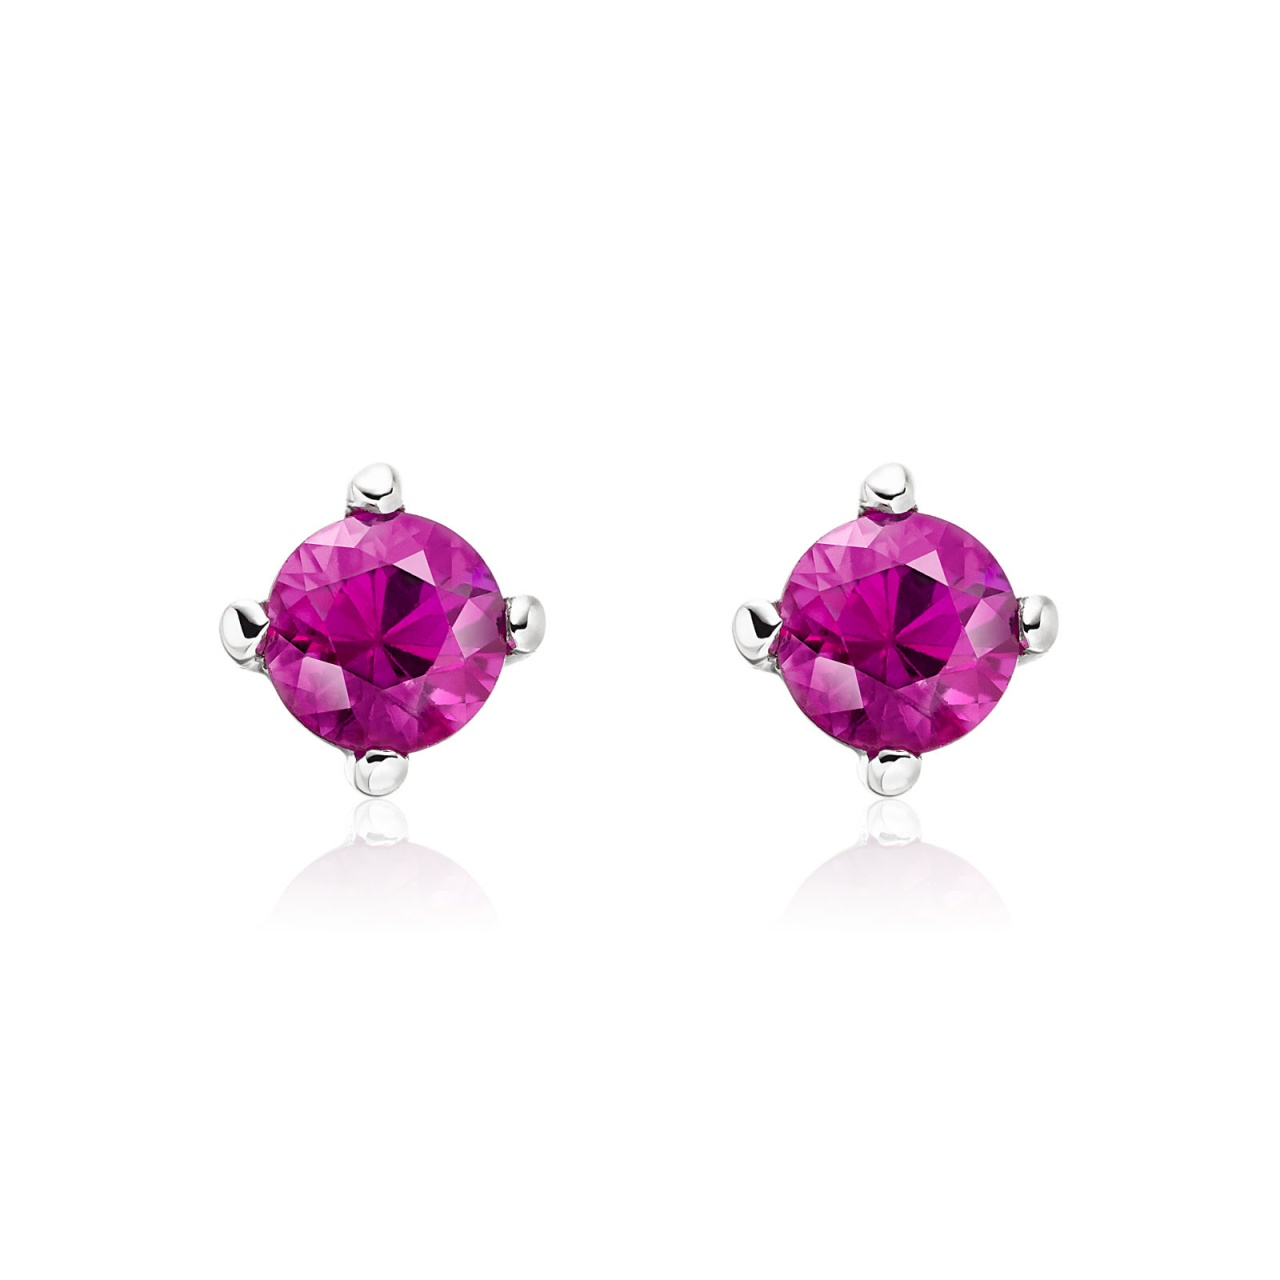 Pink Ruby Stud Earrings in 18 Carat White Gold-1